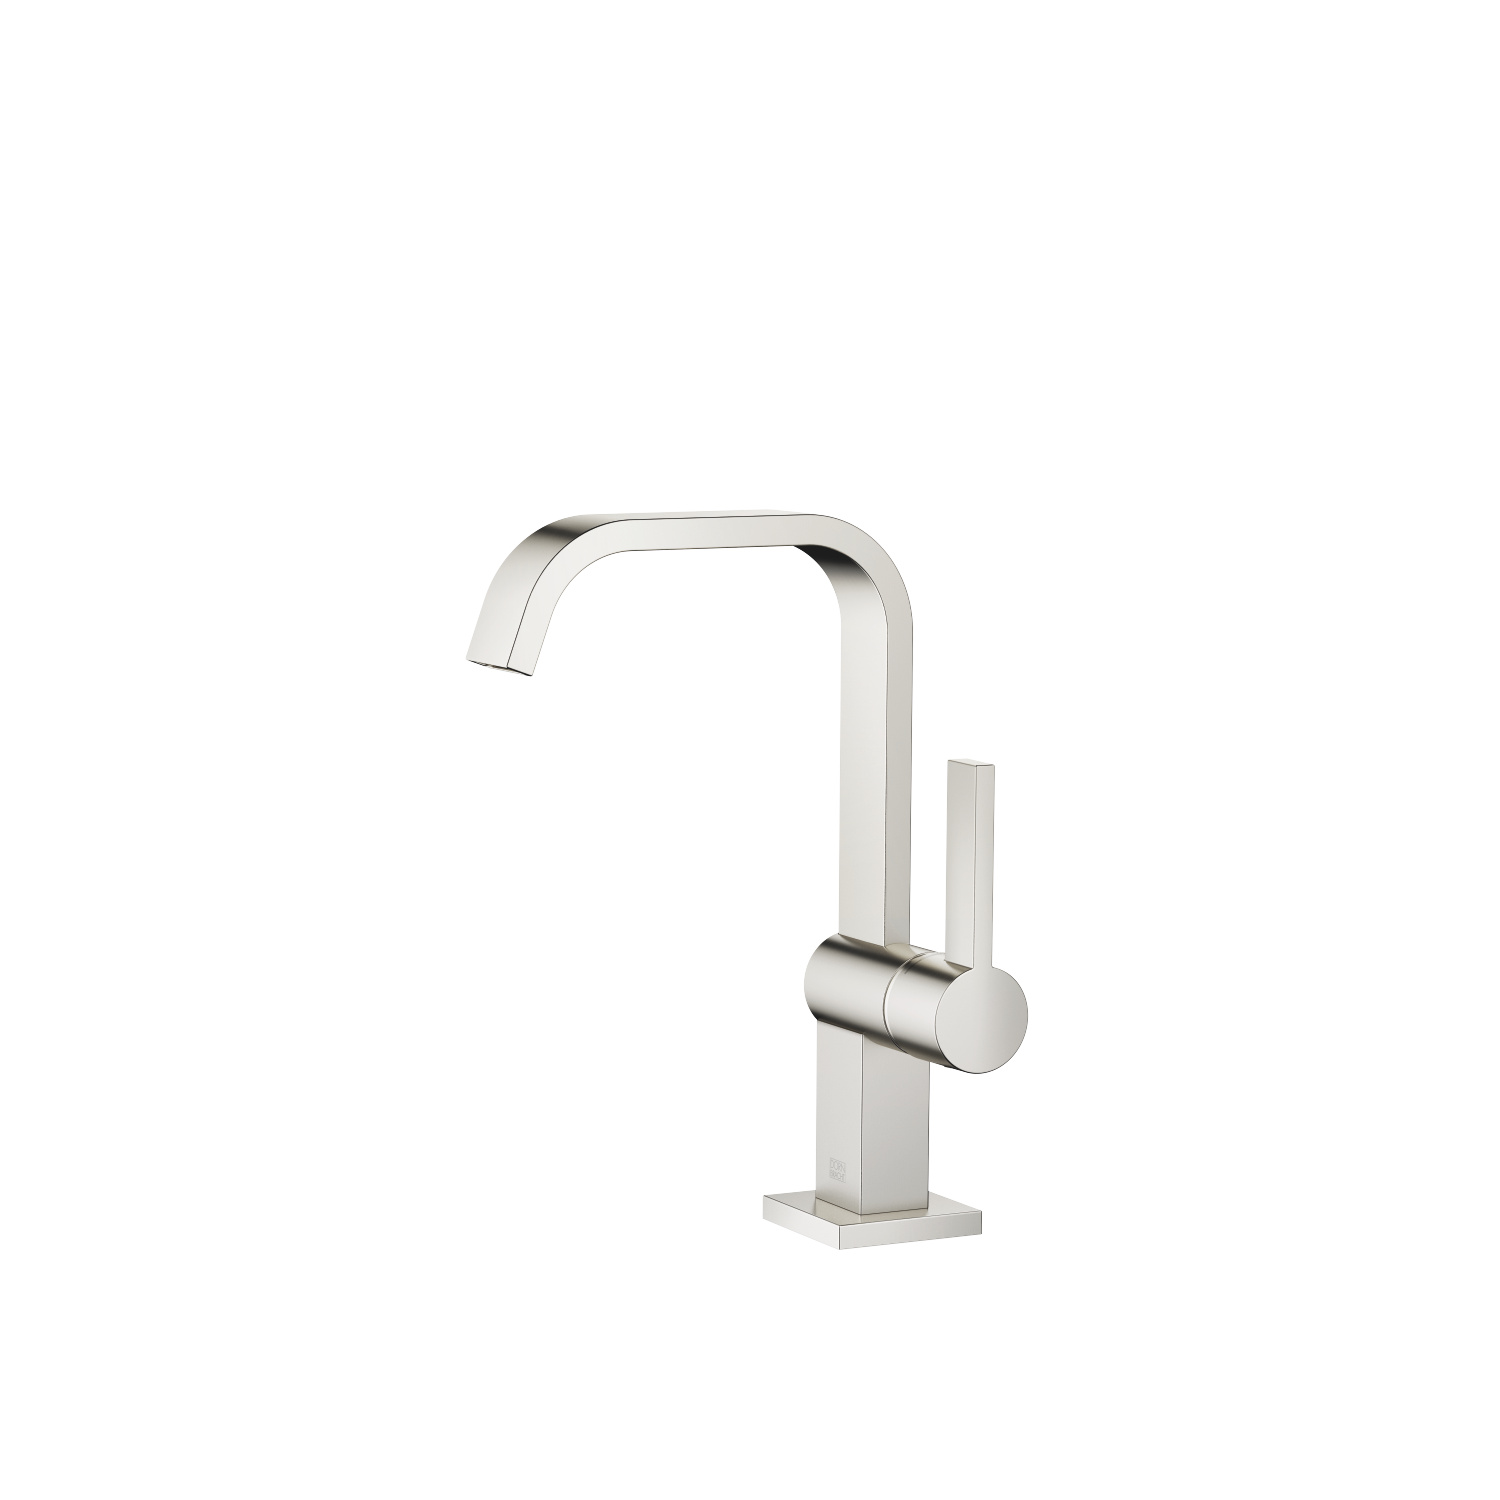 Single-lever basin mixer with high spout without pop-up waste - platinum matt - 33 526 670-06